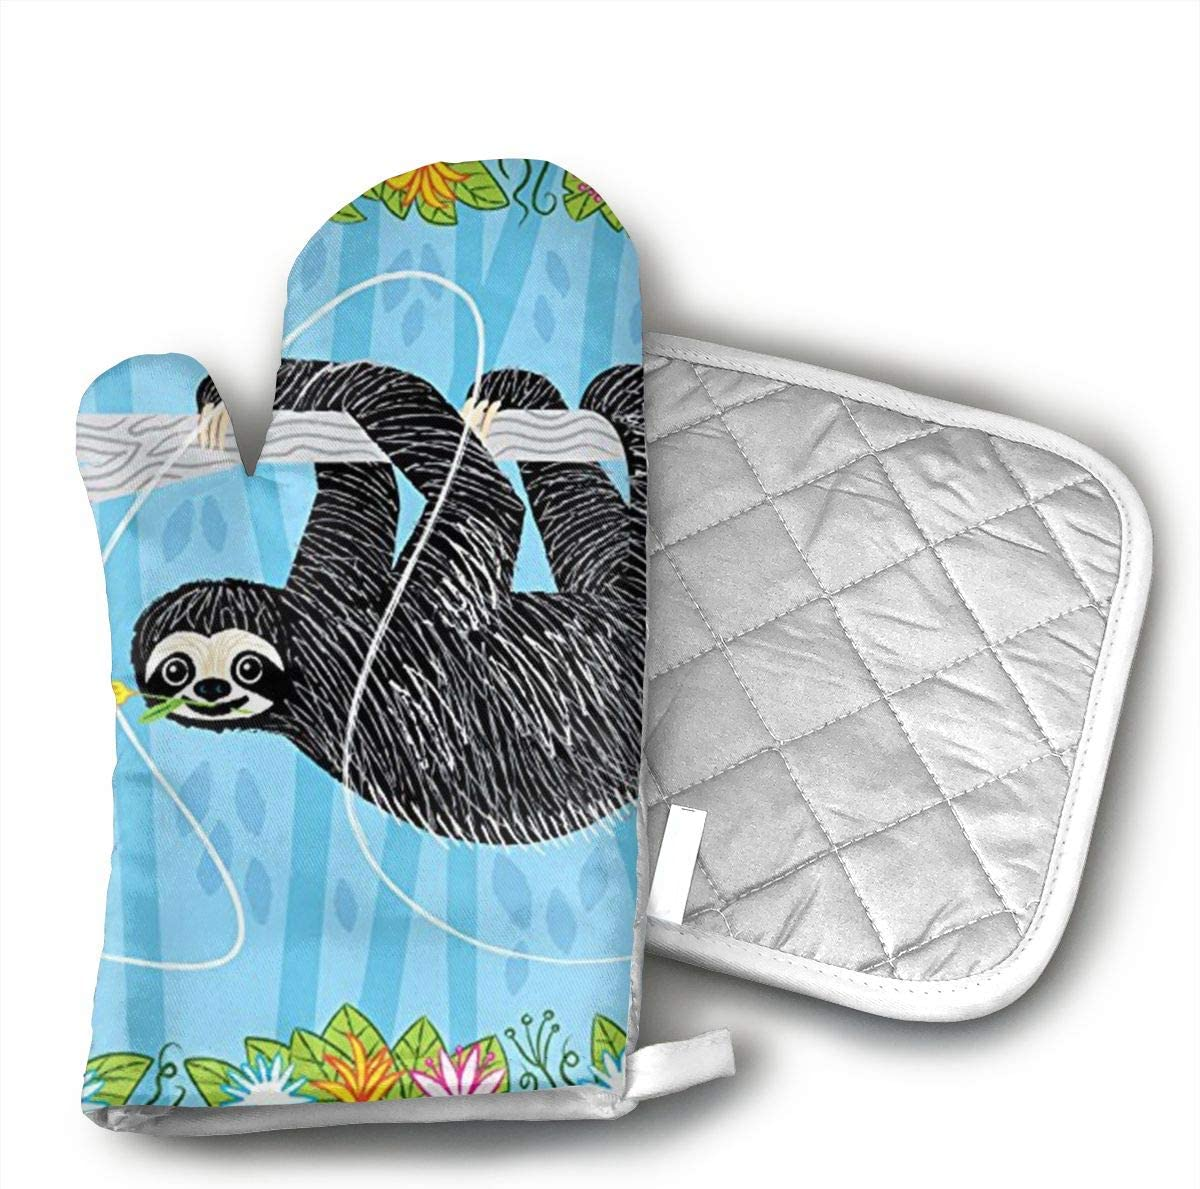 UYRHFS The Sloth and The Hummingbird Oven Mitts and Pot Holder Kitchen Set with, Heat Resistant, Oven Gloves and Pot Holders 2pcs Set for BBQ Cooking Baking